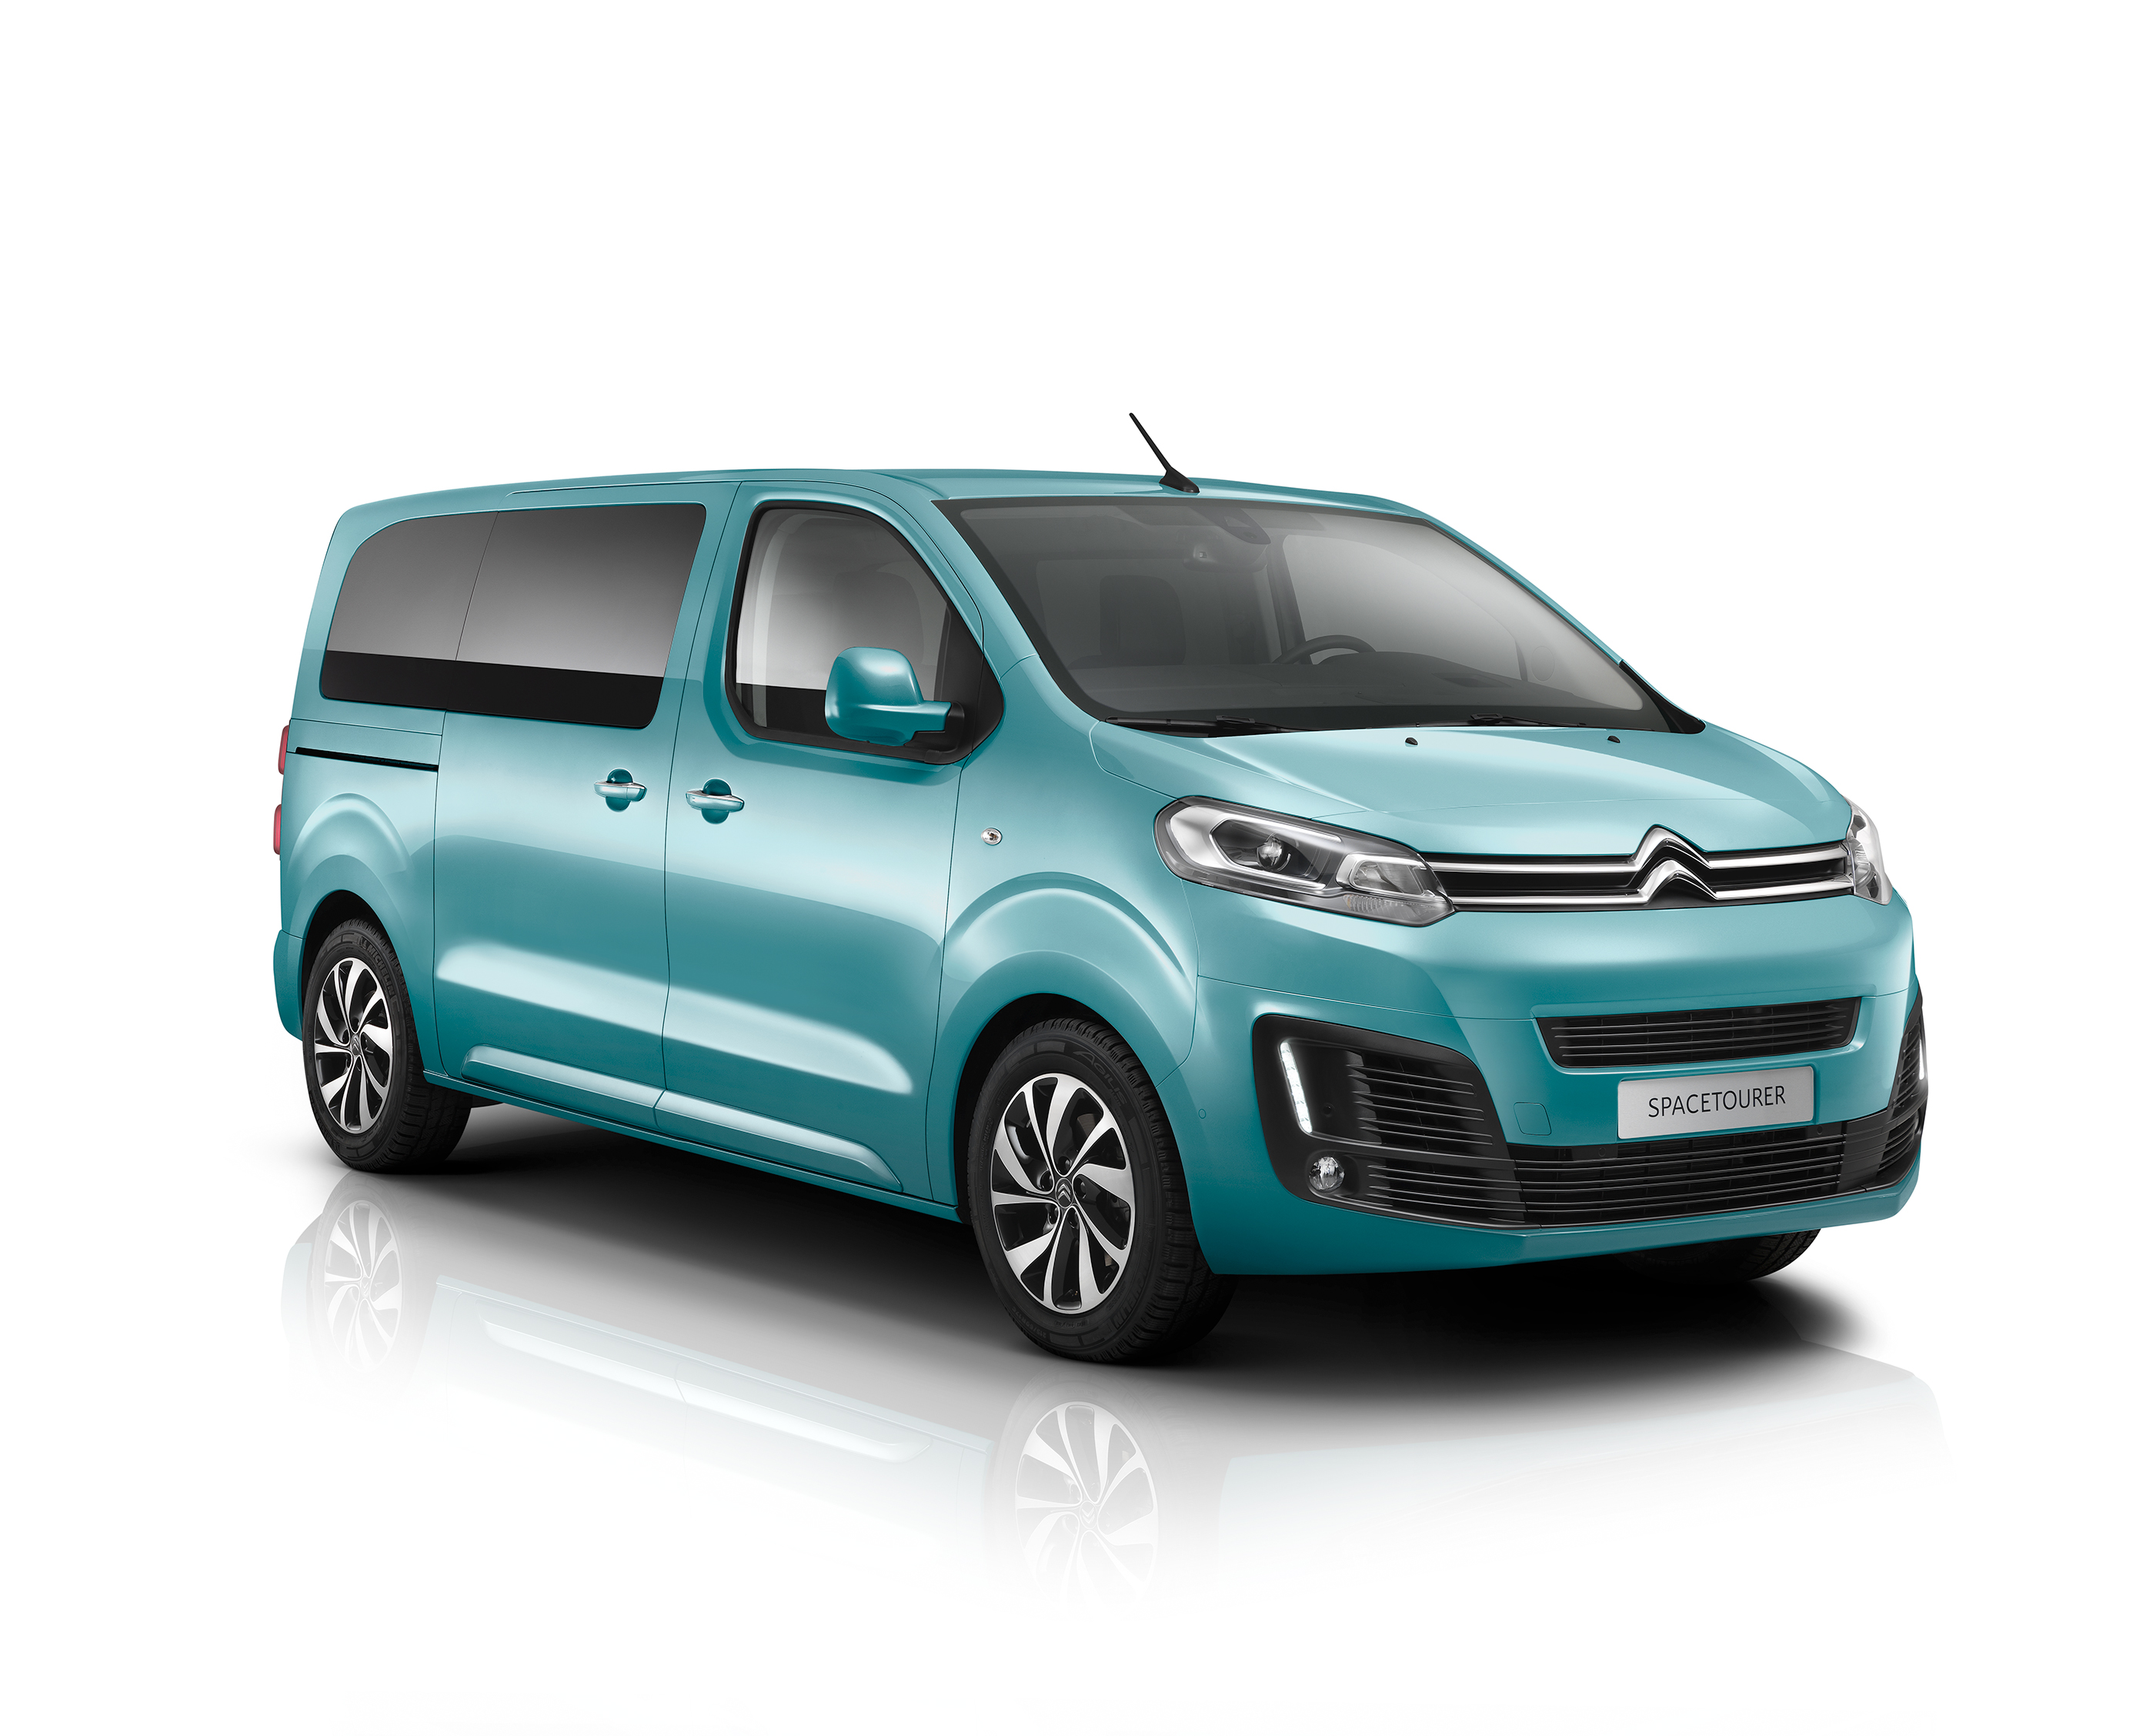 2016 citroen spacetourer debut set for geneva motor show autoevolution. Black Bedroom Furniture Sets. Home Design Ideas